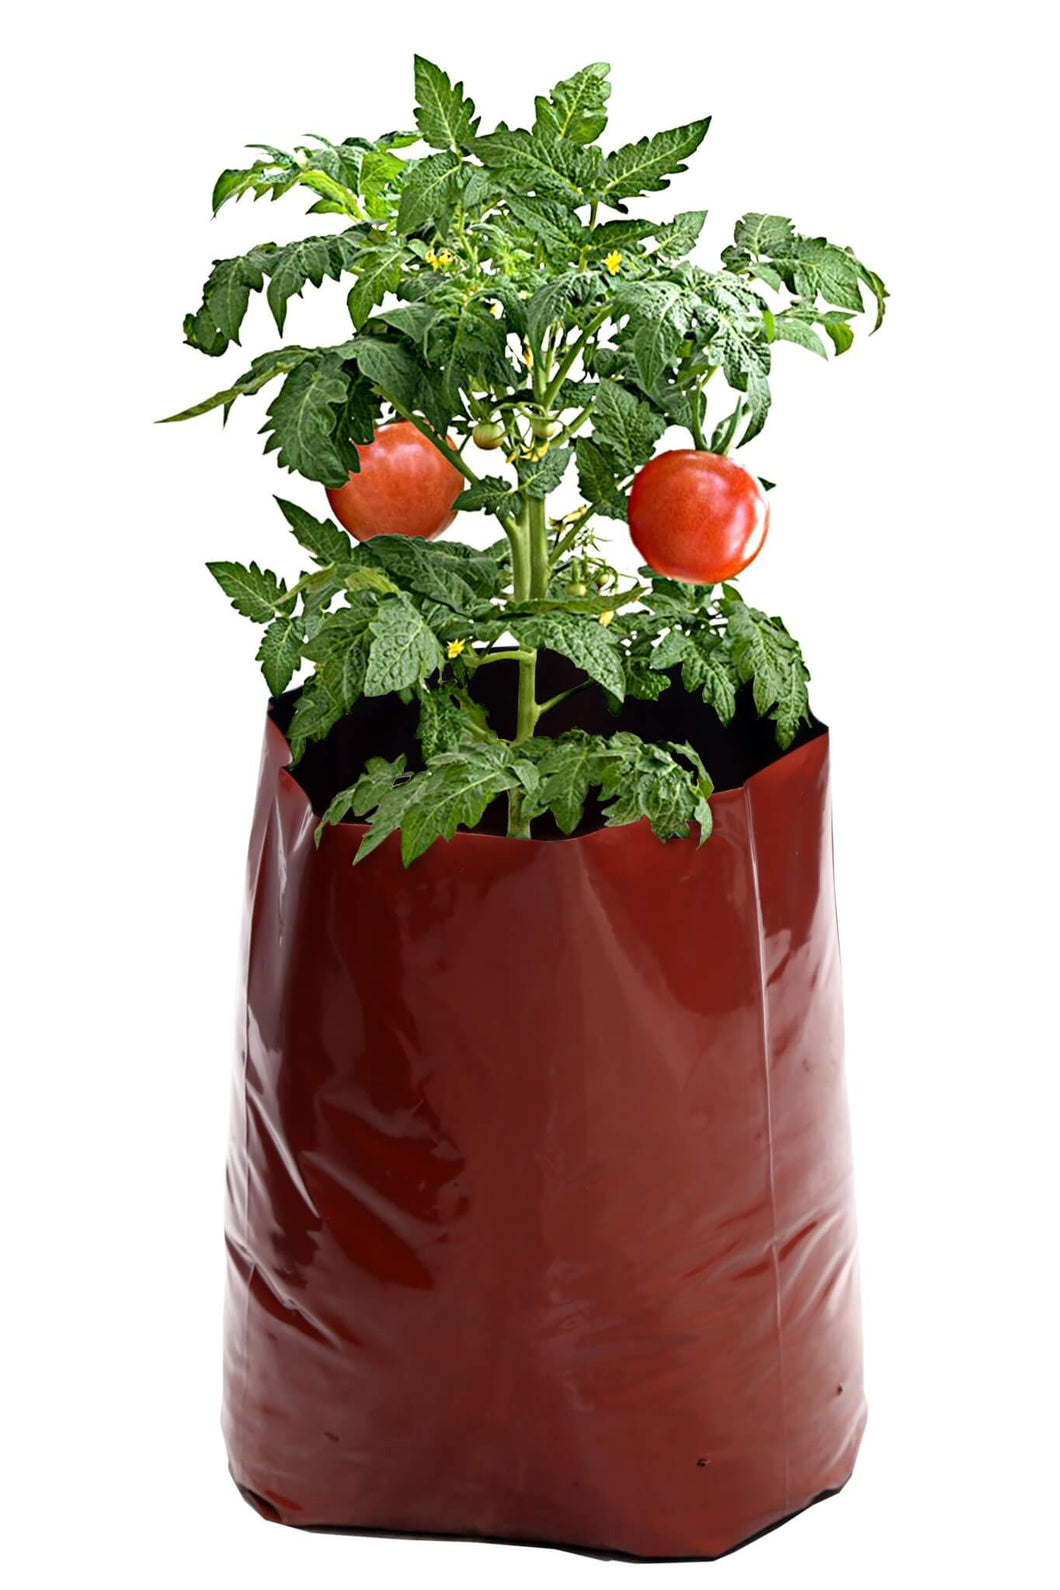 Rochfern Grow Bag,Extra Large,100% Virgin Polyethylene, (60 x 34 x 20Cms.) UV Treated Pack of 24